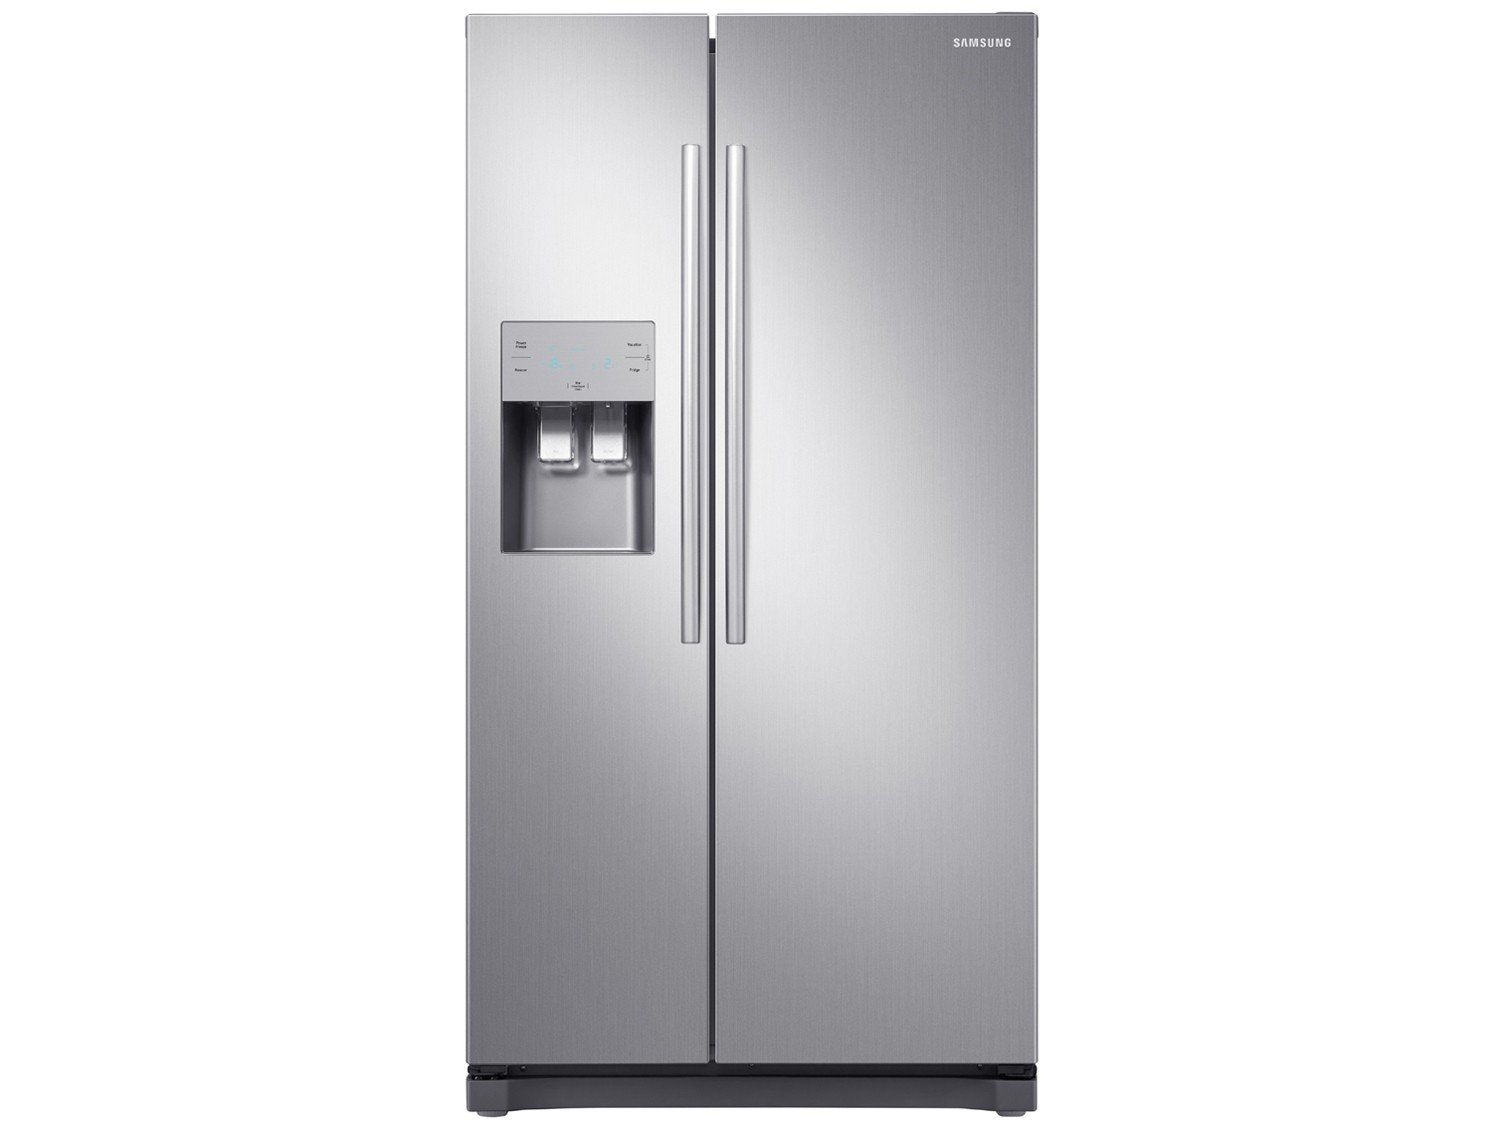 Refrigerador Samsung RS50N Side by Side Inox Look - 501L - 110v